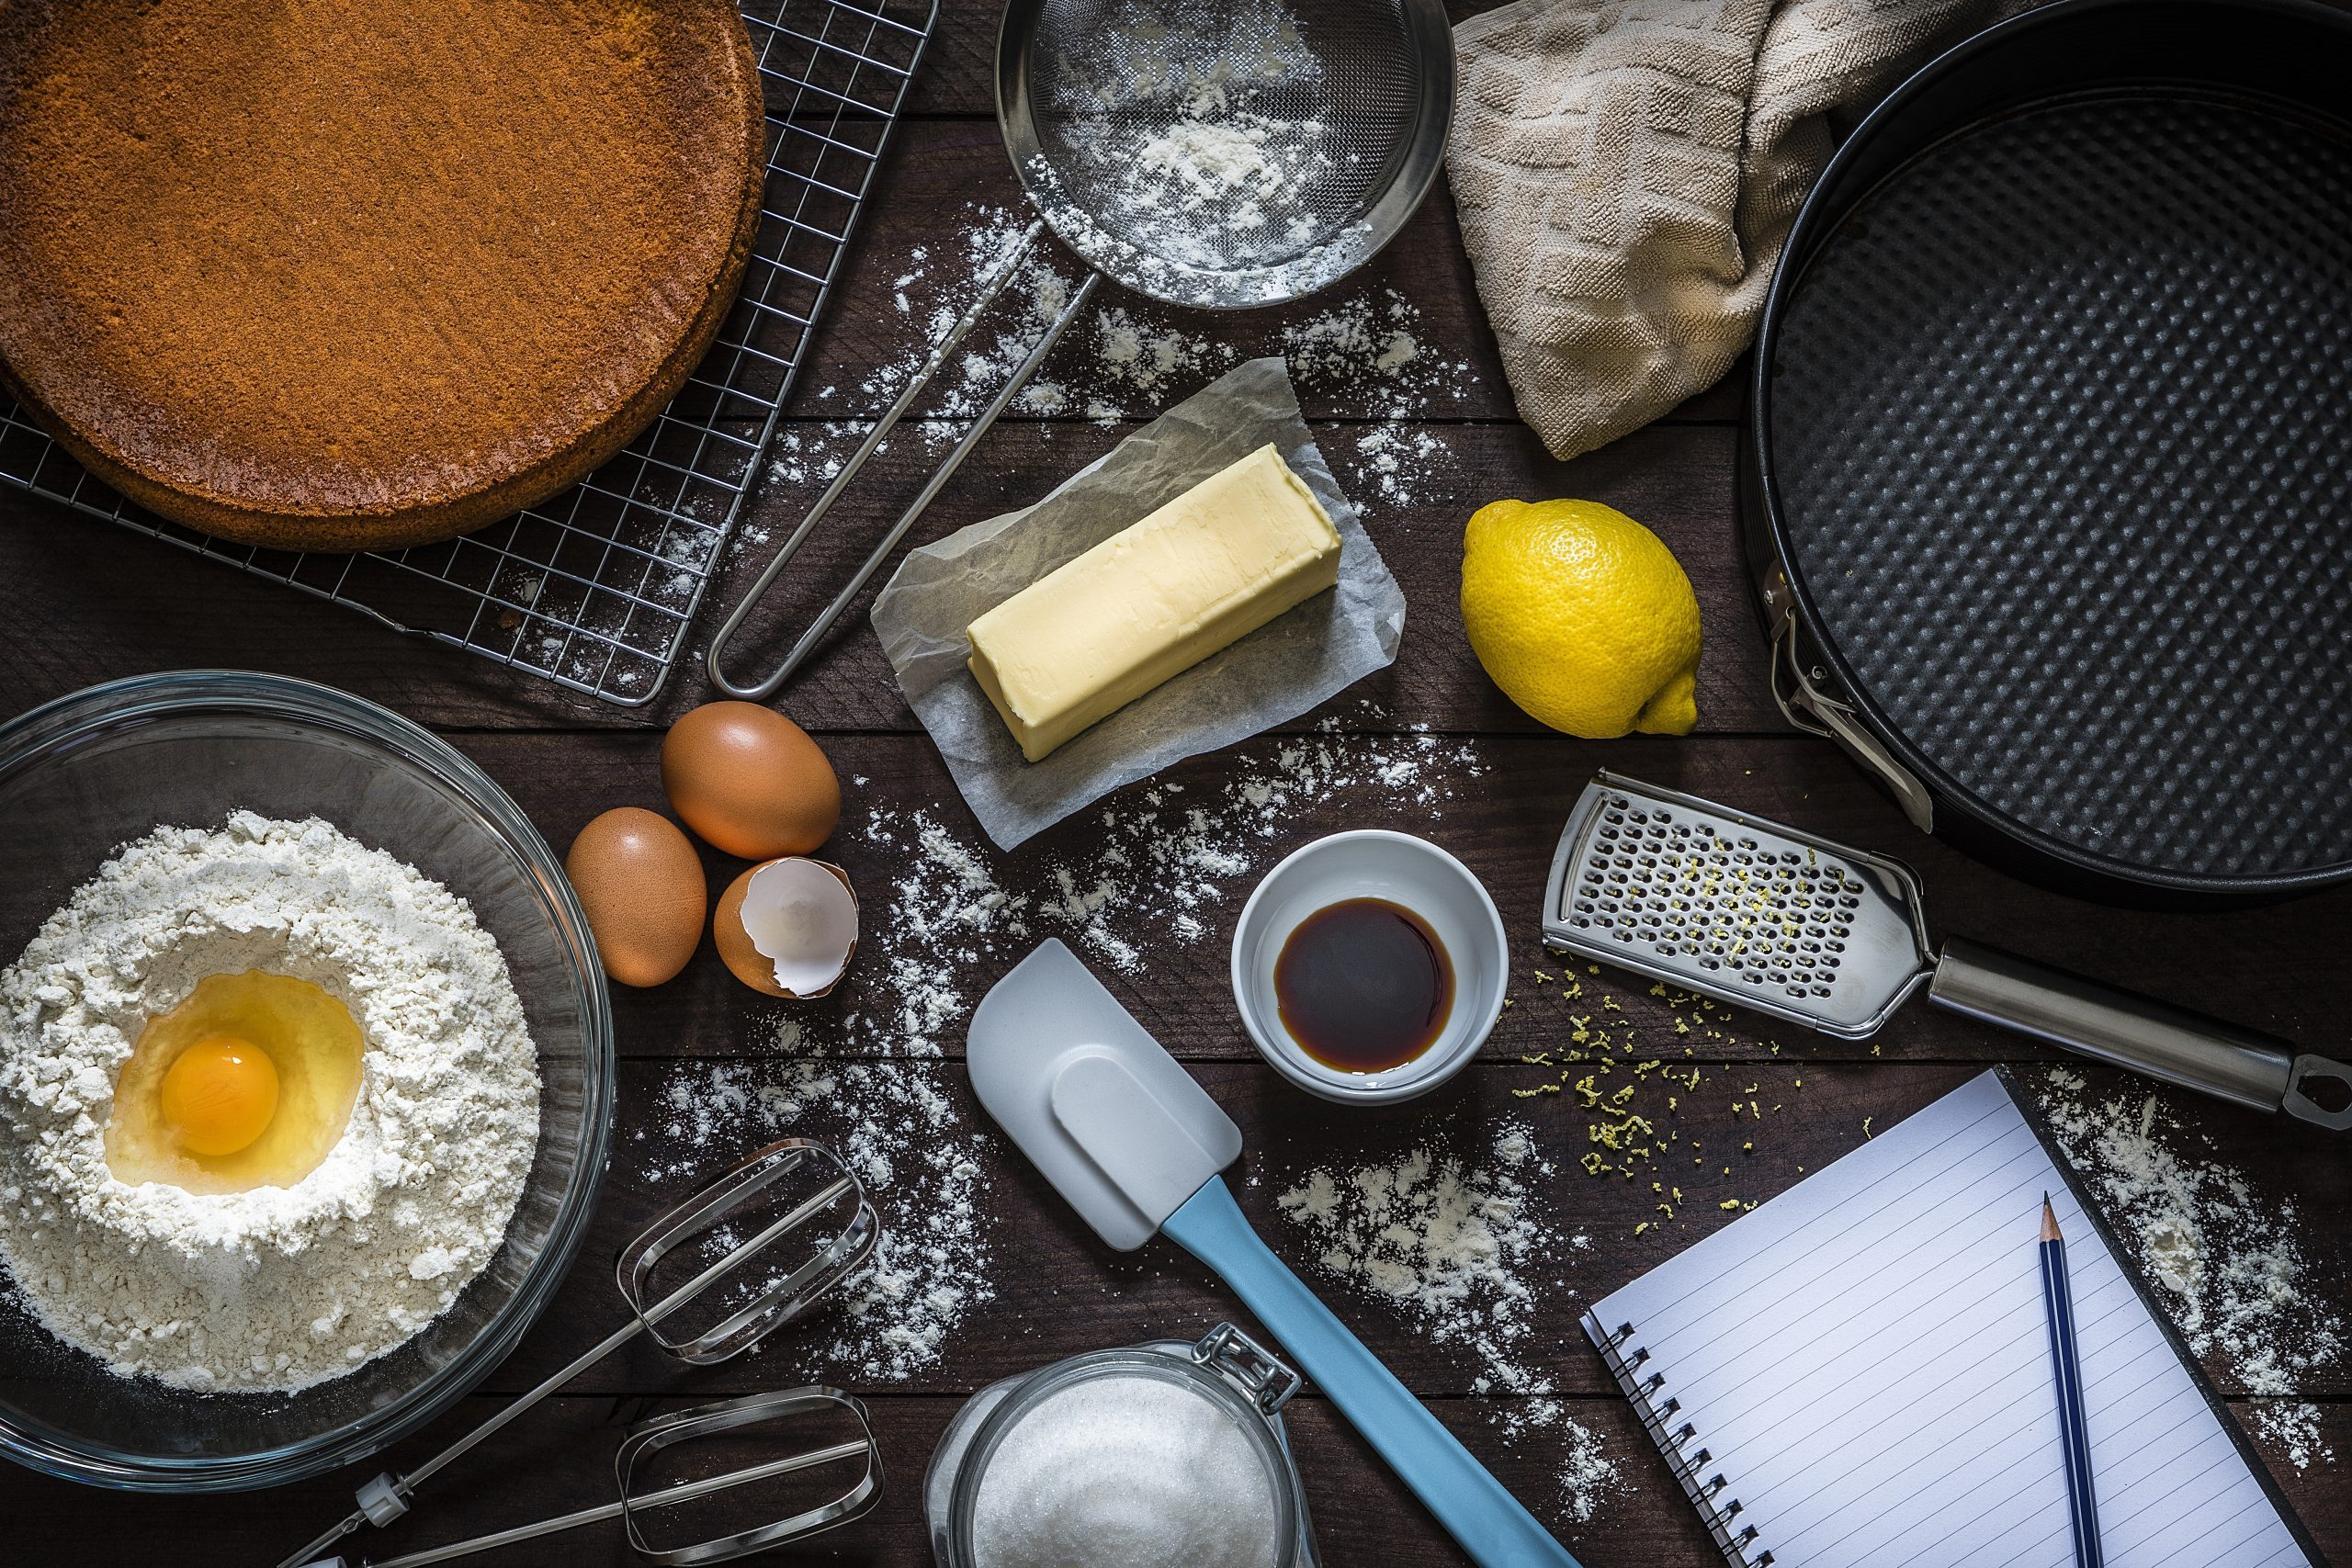 Top view of various ingredients and utensils for baking cakes or cooking desserts like flour, eggs, sugar, butter, a spatula, a sieve, a baking mold and a grater with lemon zest. At the lower right corner is an opened cookbook with copy space ideal for a text, a logo or a recipe. All the objects are on a rustic wooden table. Low key DSLR photo taken with Canon EOS 6D Mark II and Canon EF 24-105 mm f/4L